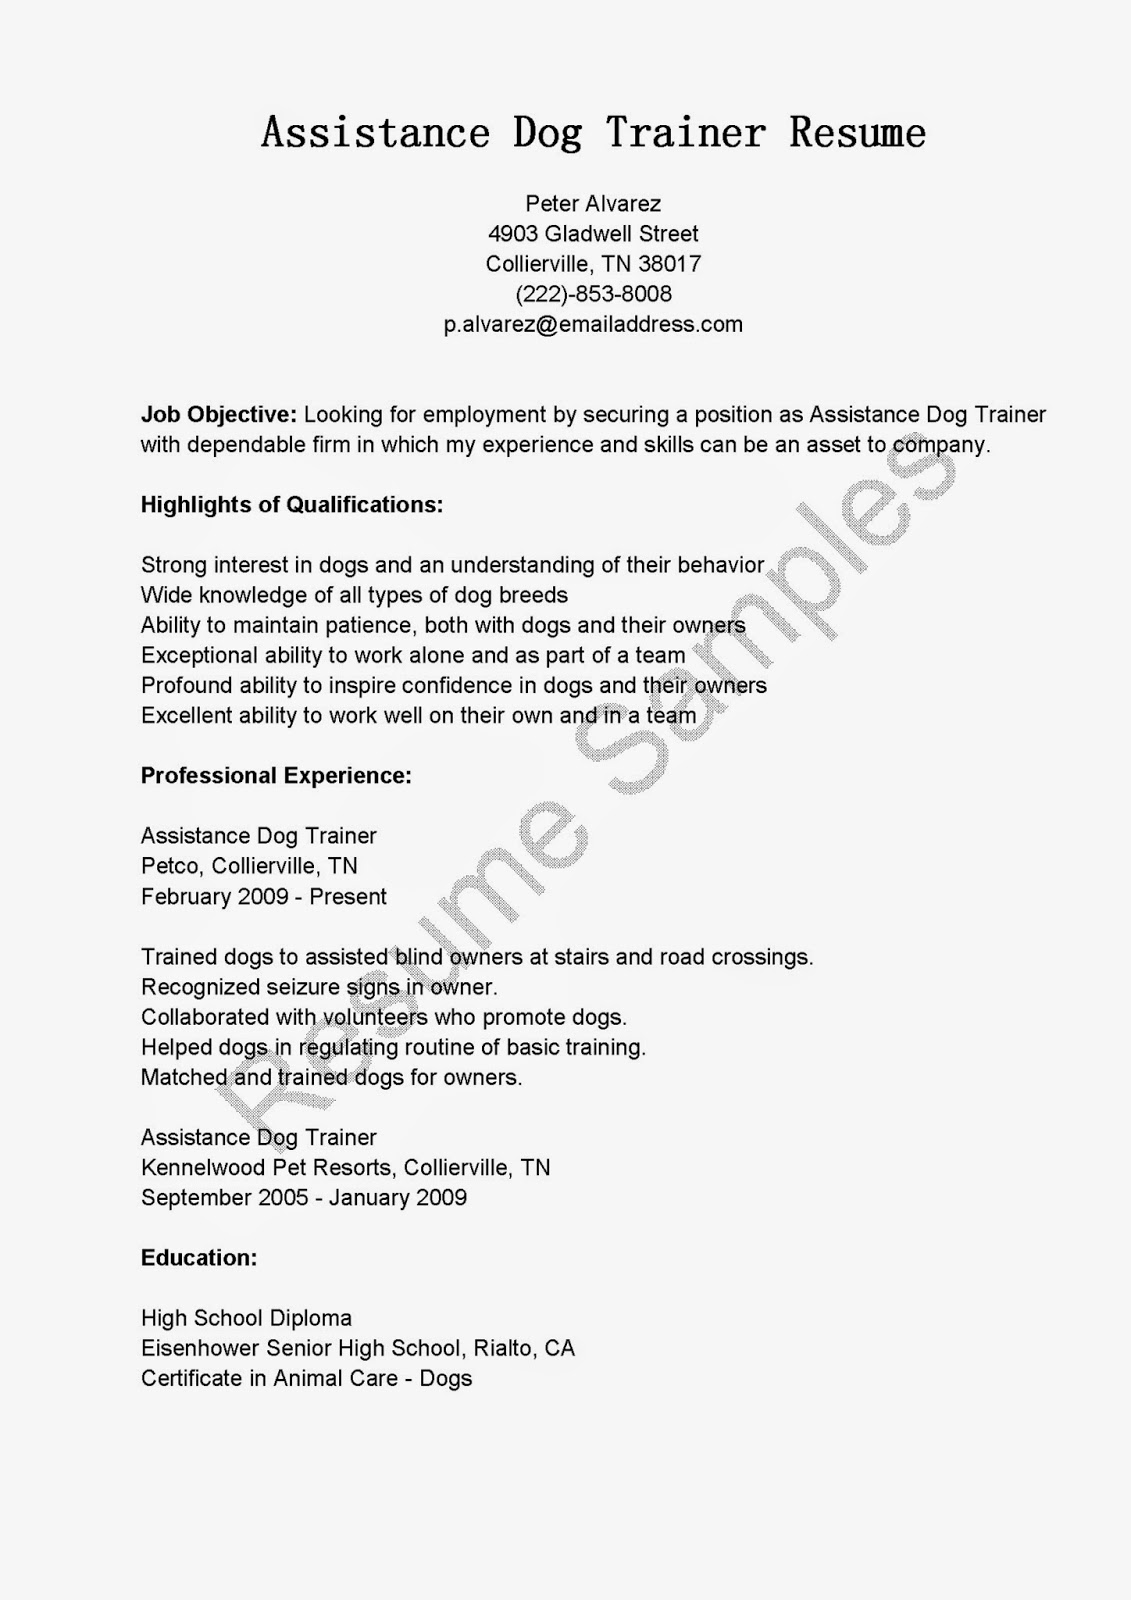 Resume Samples Assistance Dog Trainer Resume Sample